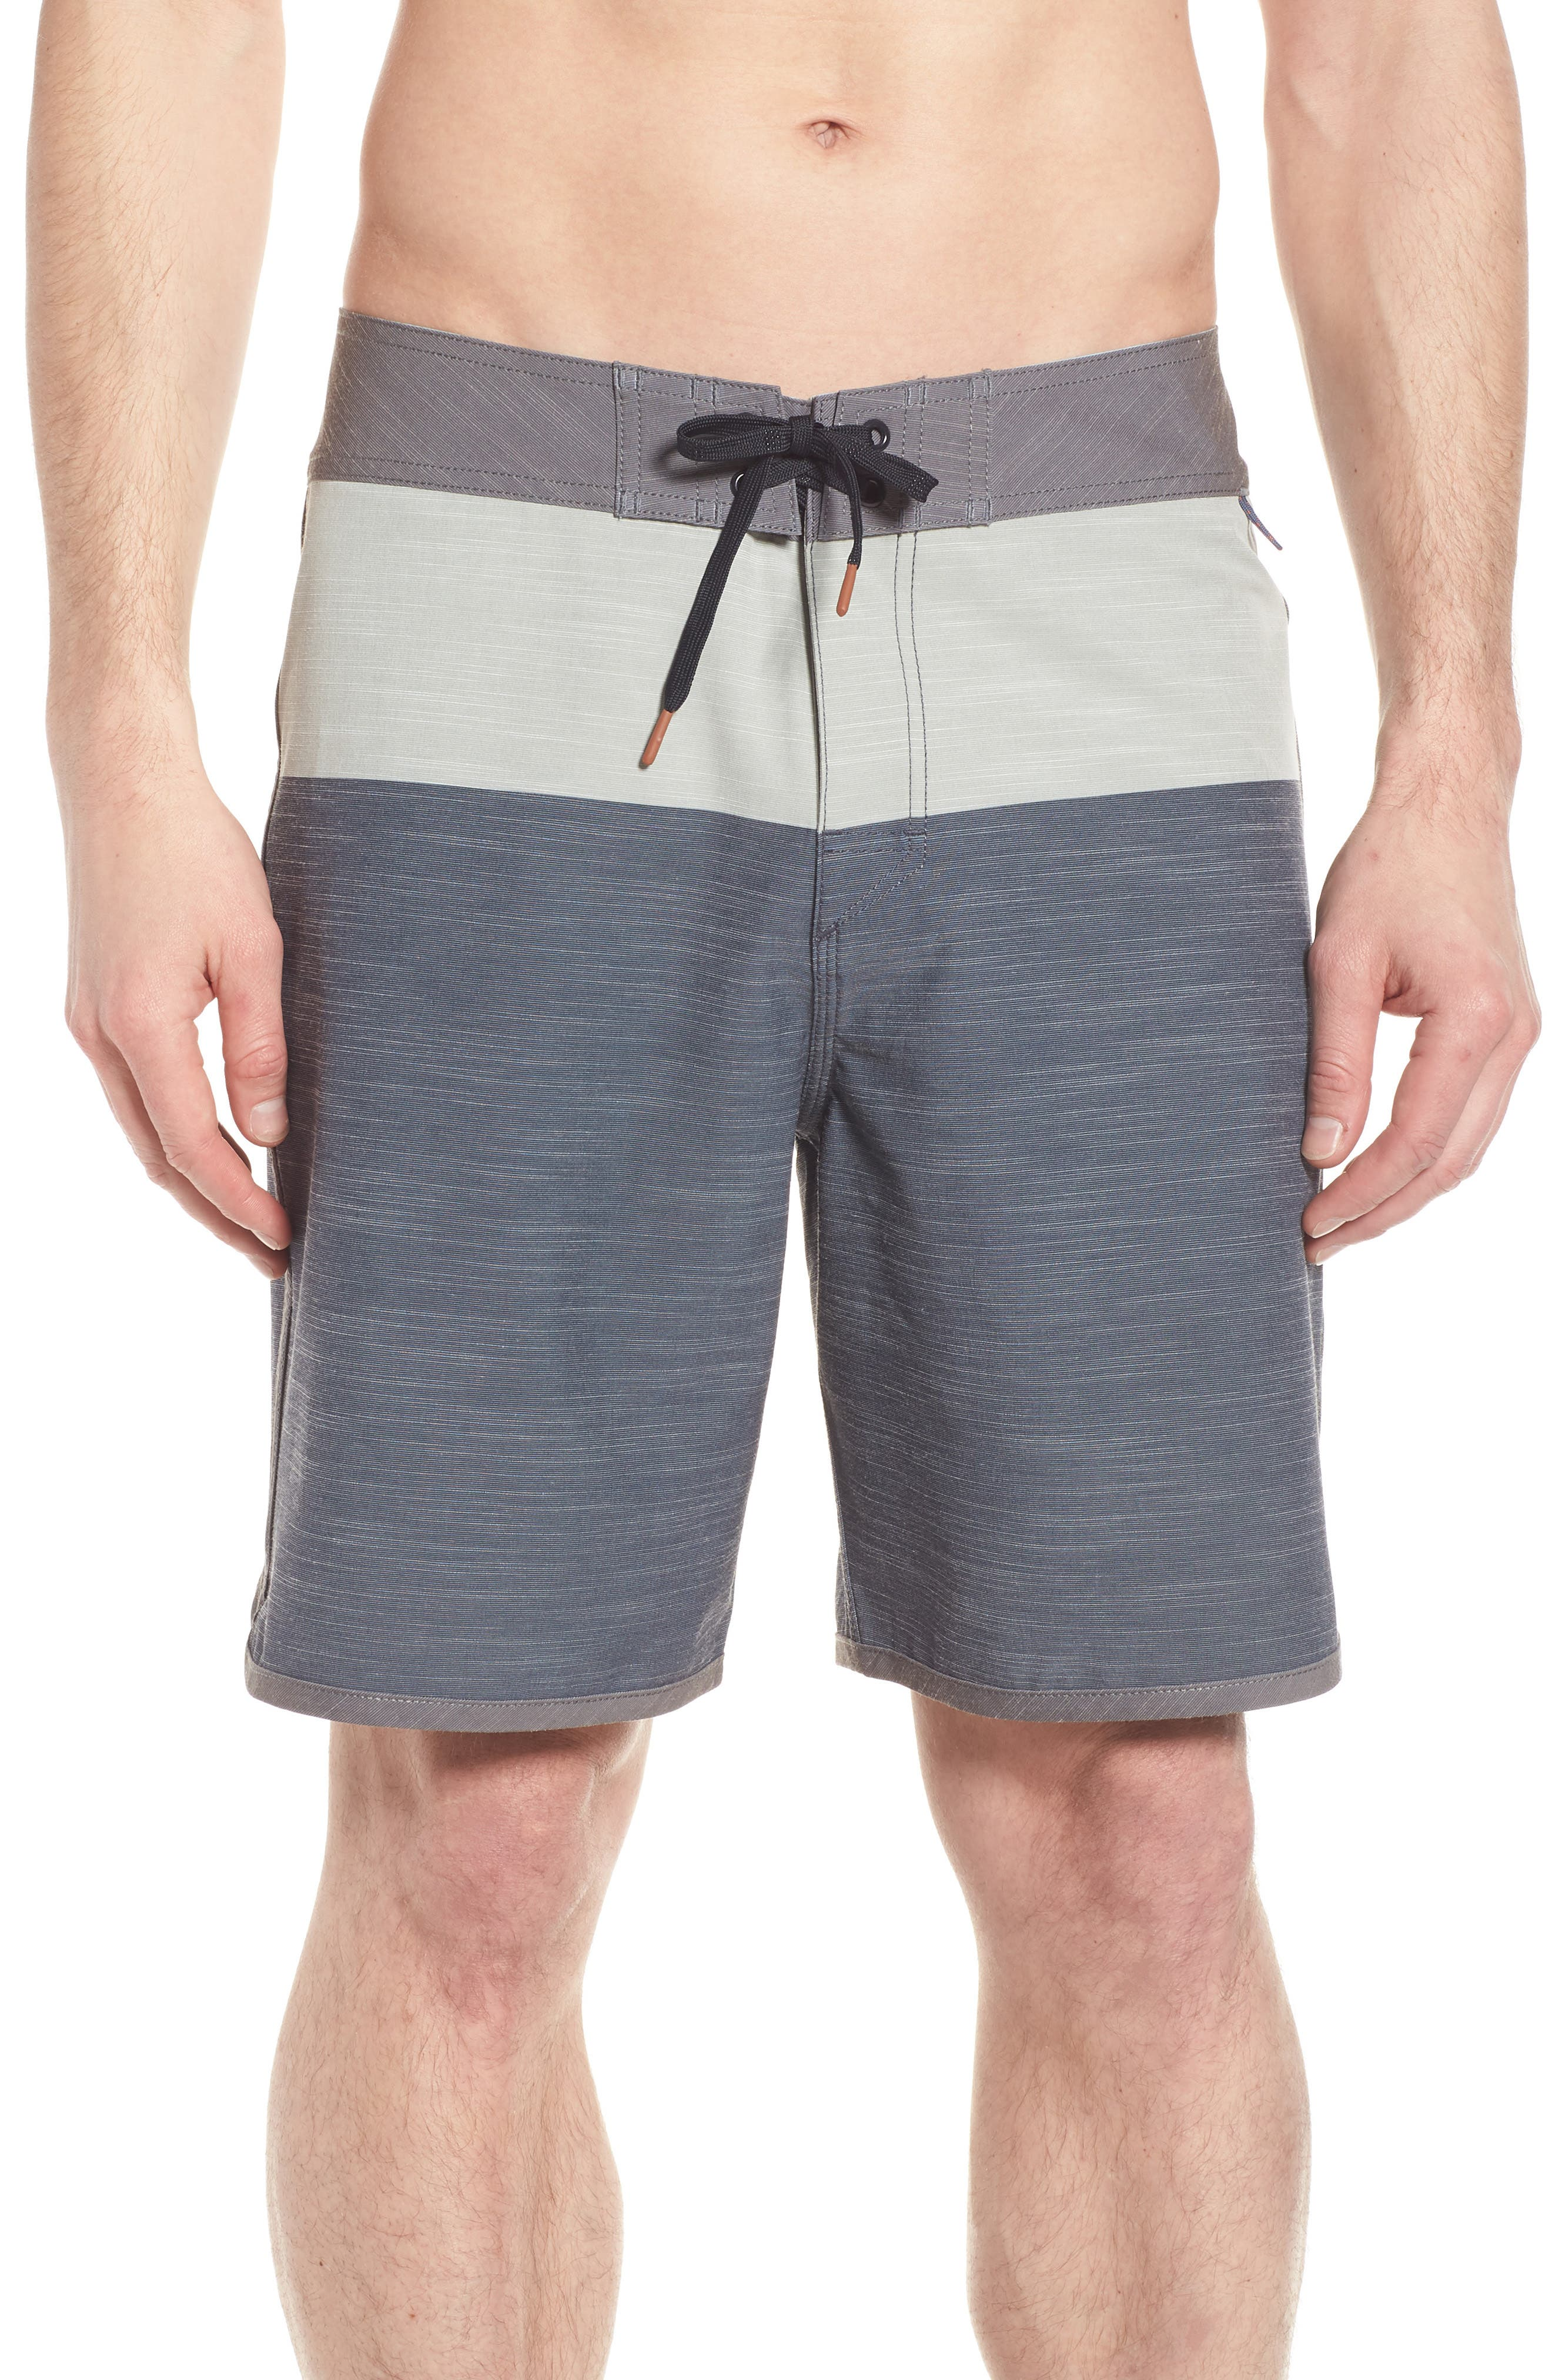 Beachcomber Board Shorts,                         Main,                         color, Charcoal